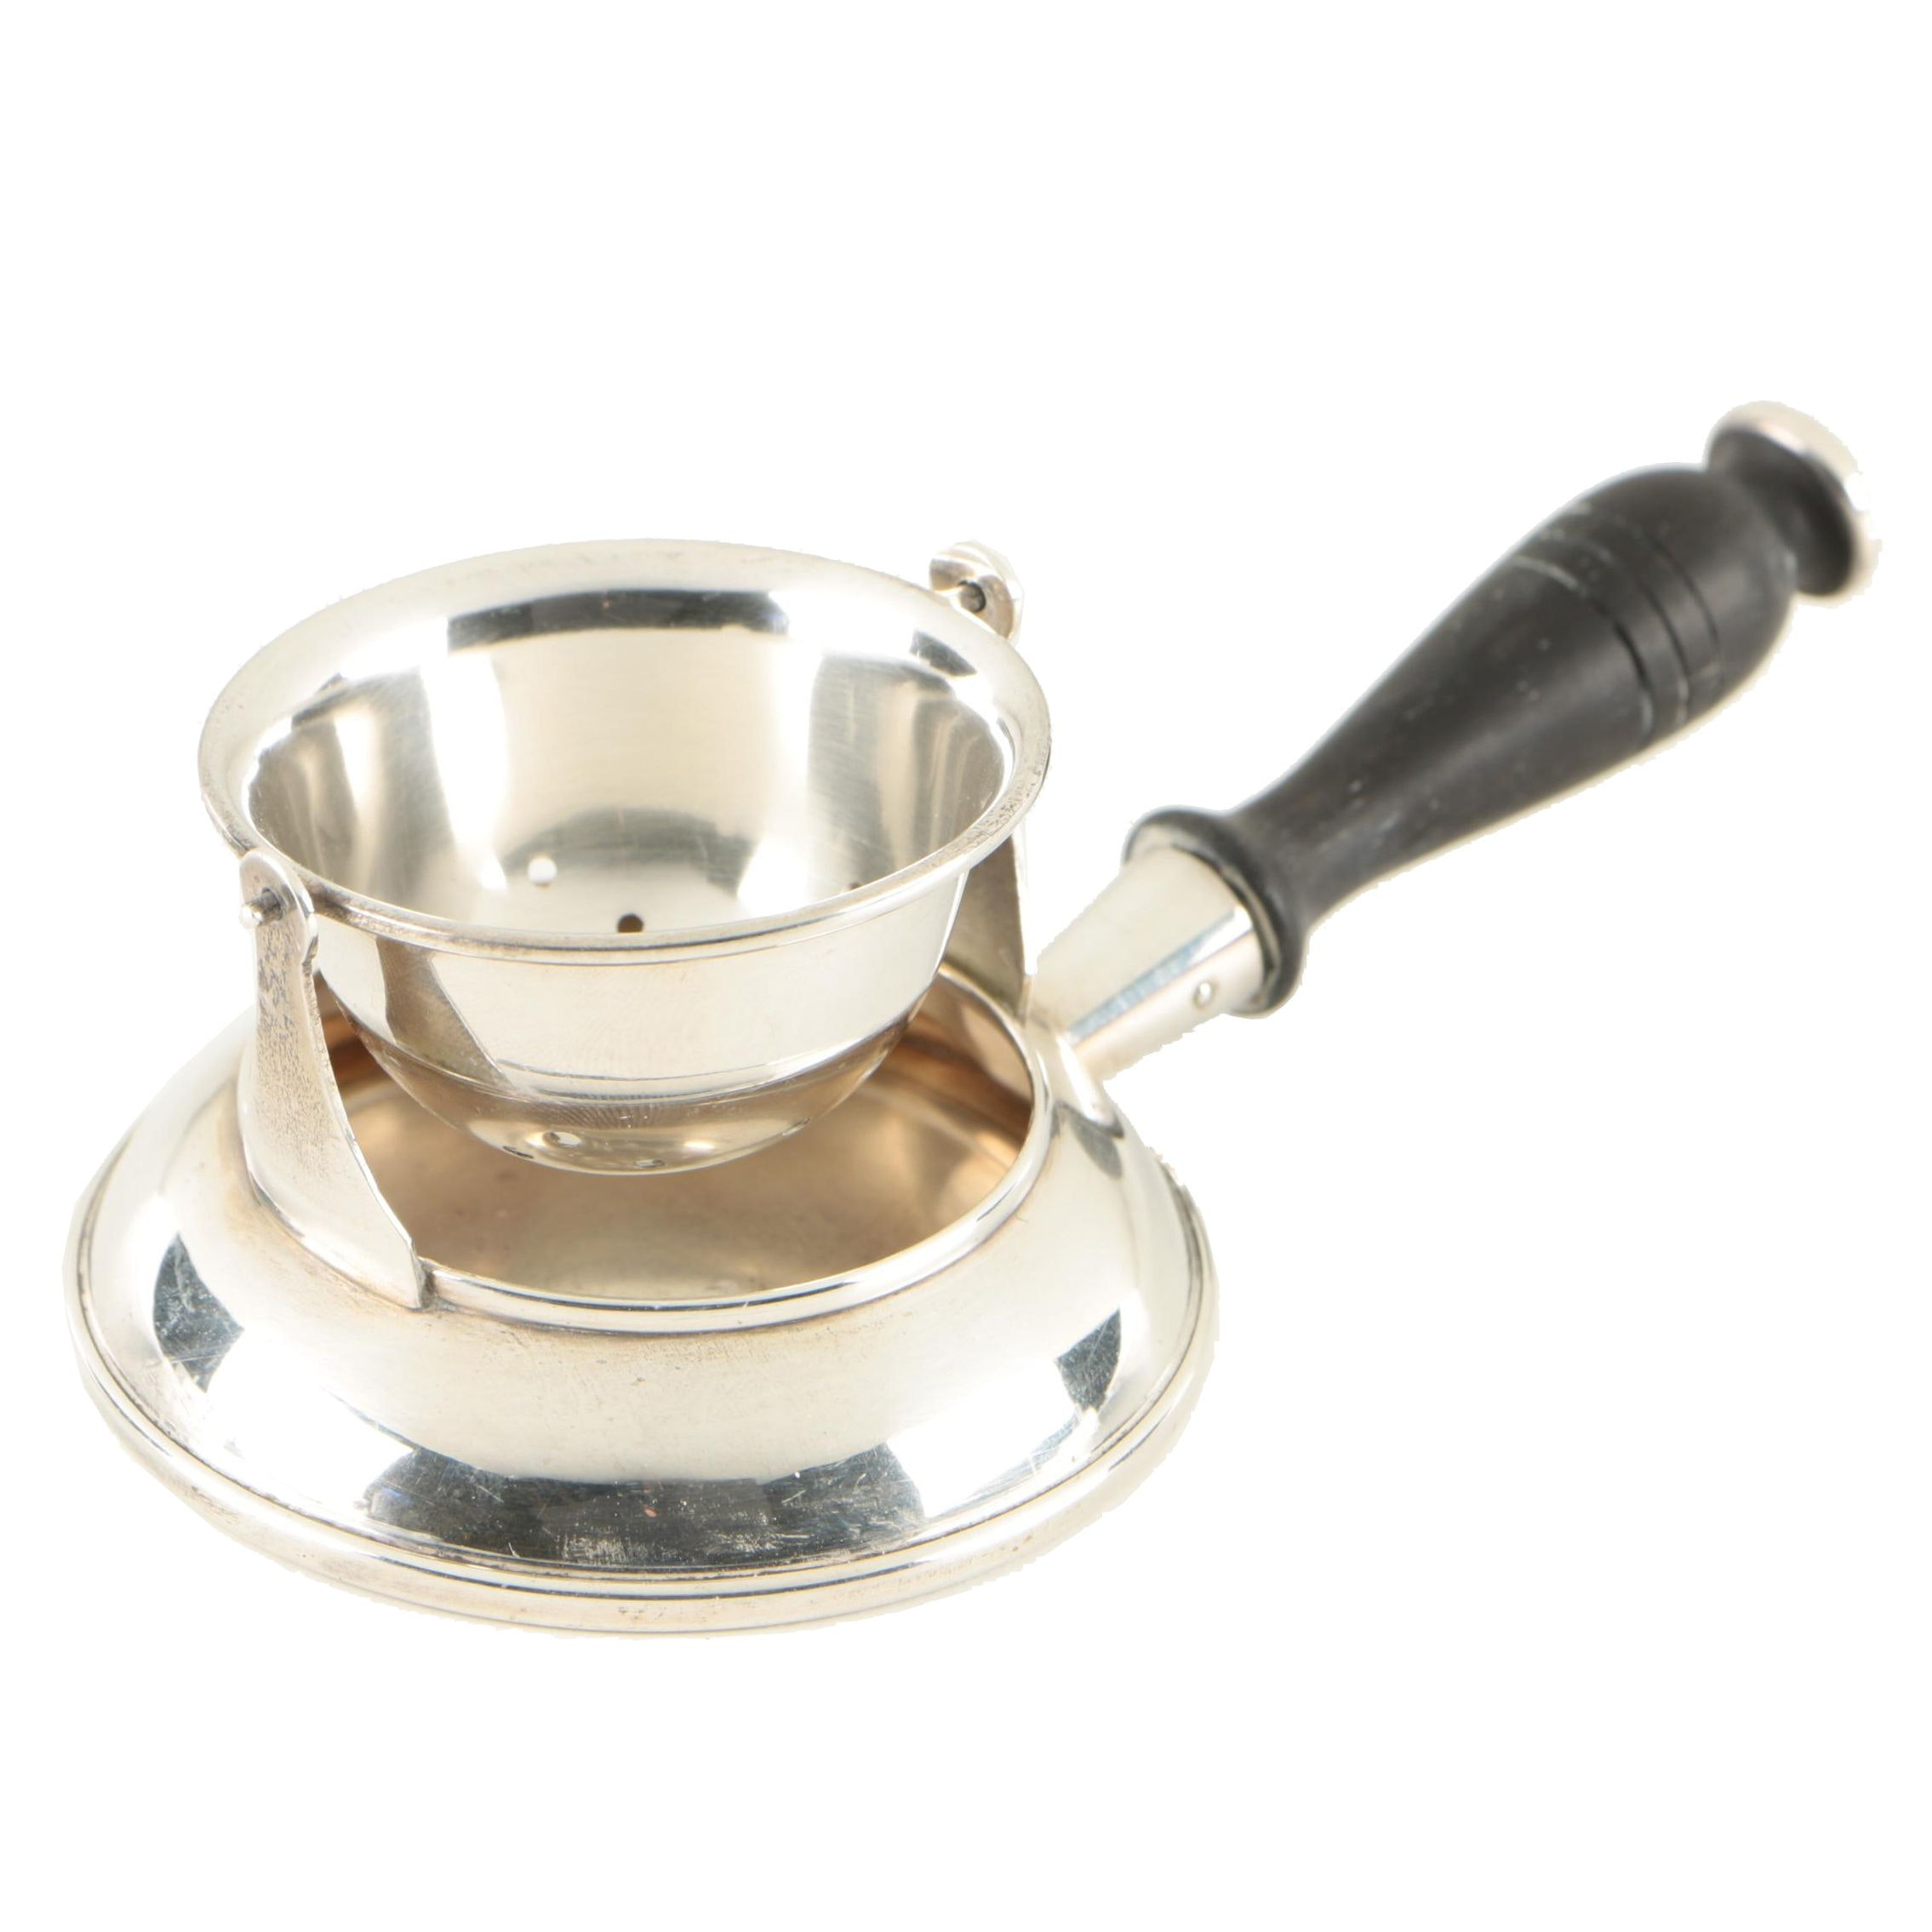 Ellmore Sterling Silver Loose Leaf Tea Strainer with Stand, 1935-1960